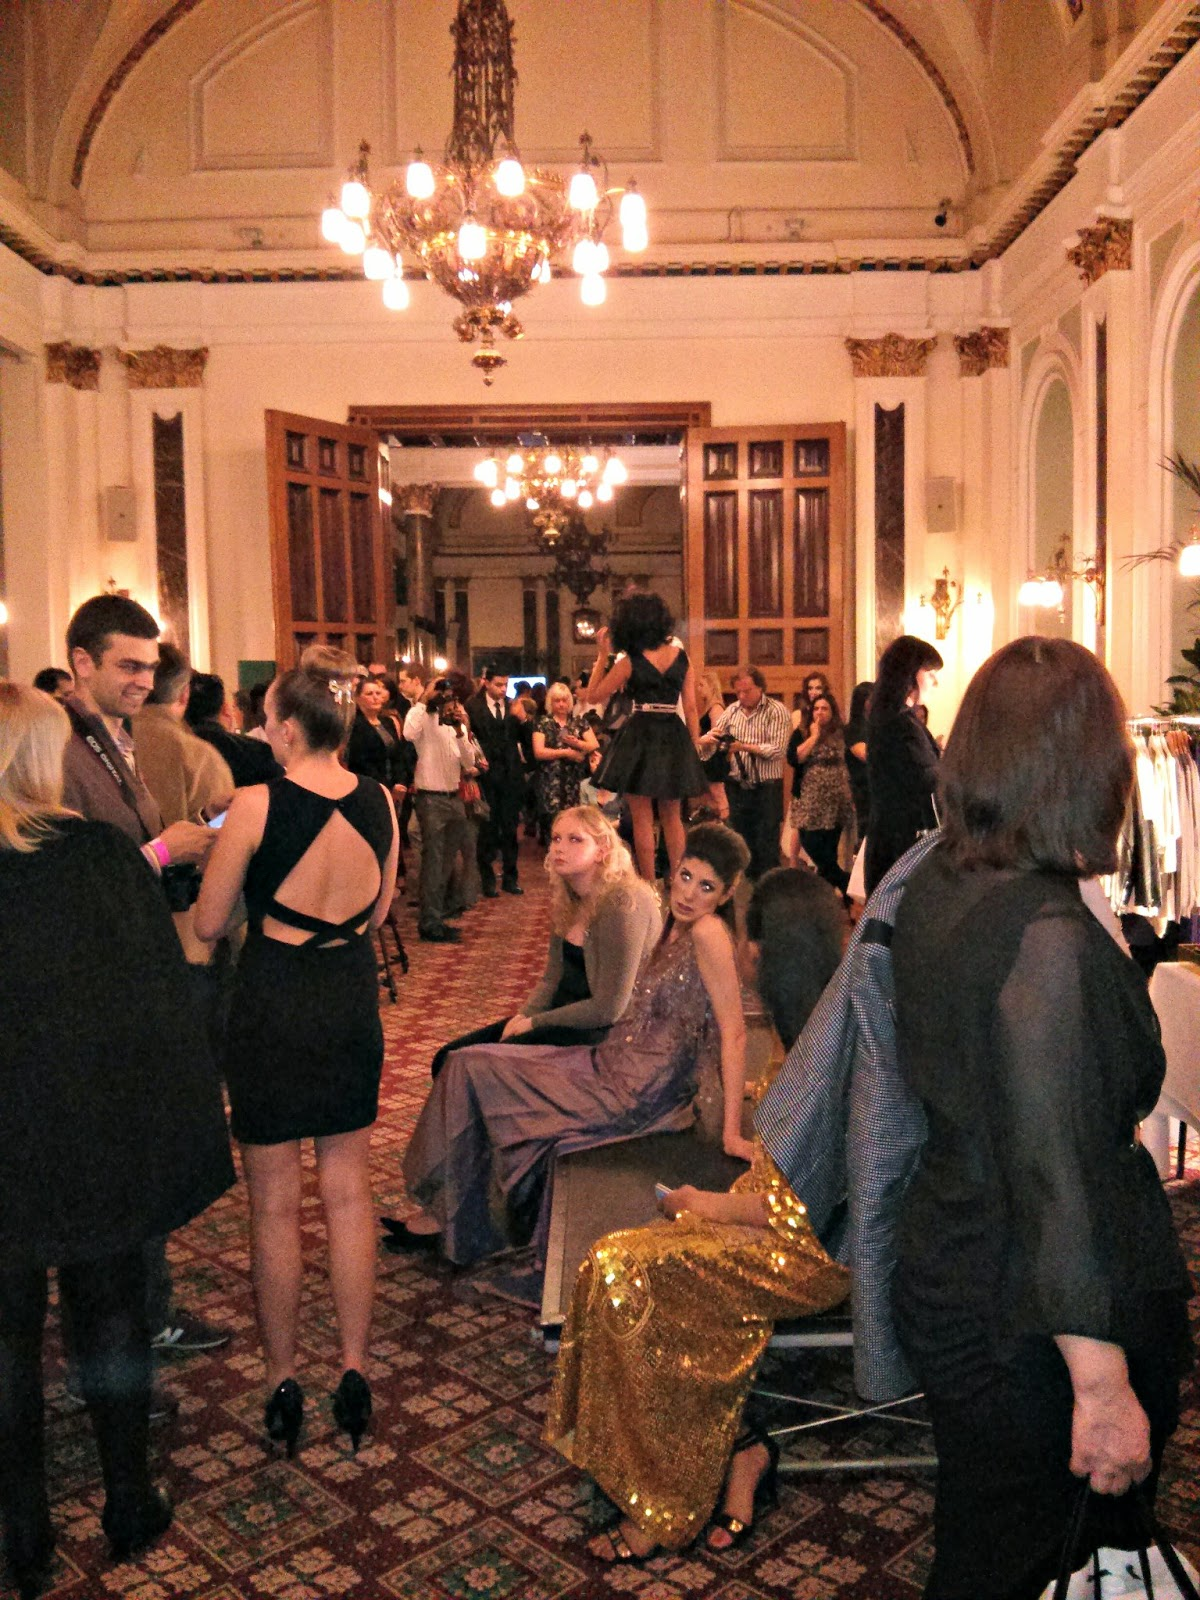 Fashion Networking event at the Birmingham Fashion Week event